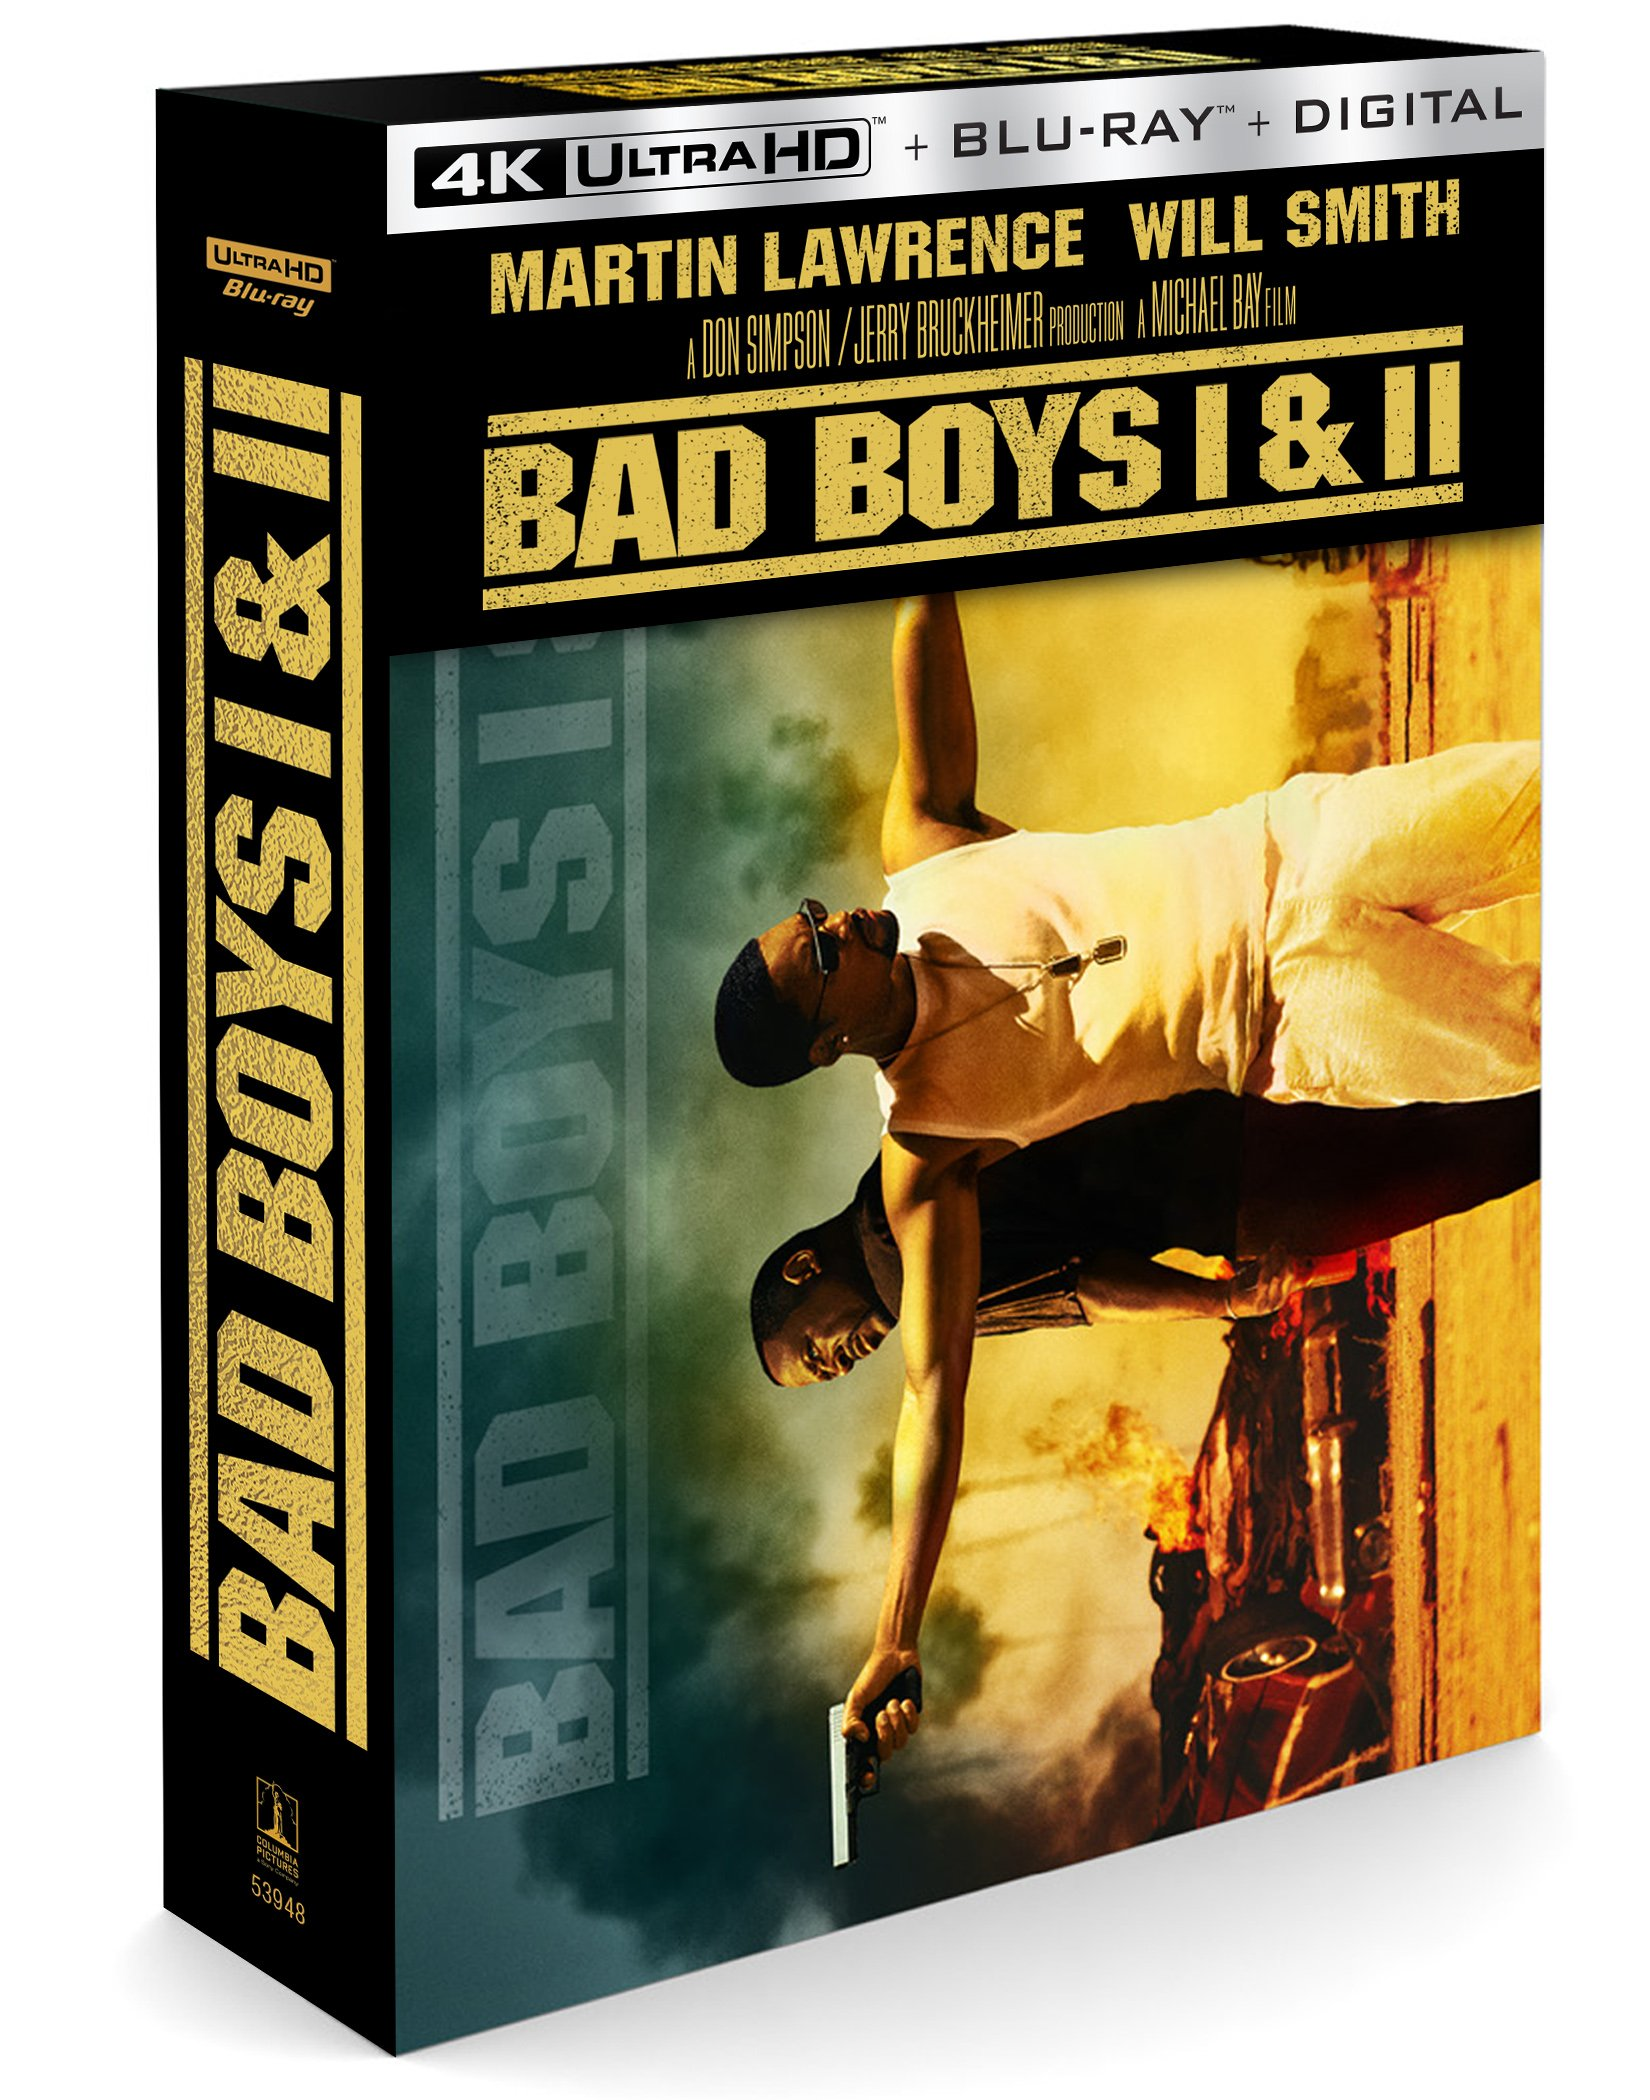 DVD : Bad Boys / Bad Boys Ii (With Blu-Ray, 4K Mastering, Boxed Set, Digital Copy, 4PC)